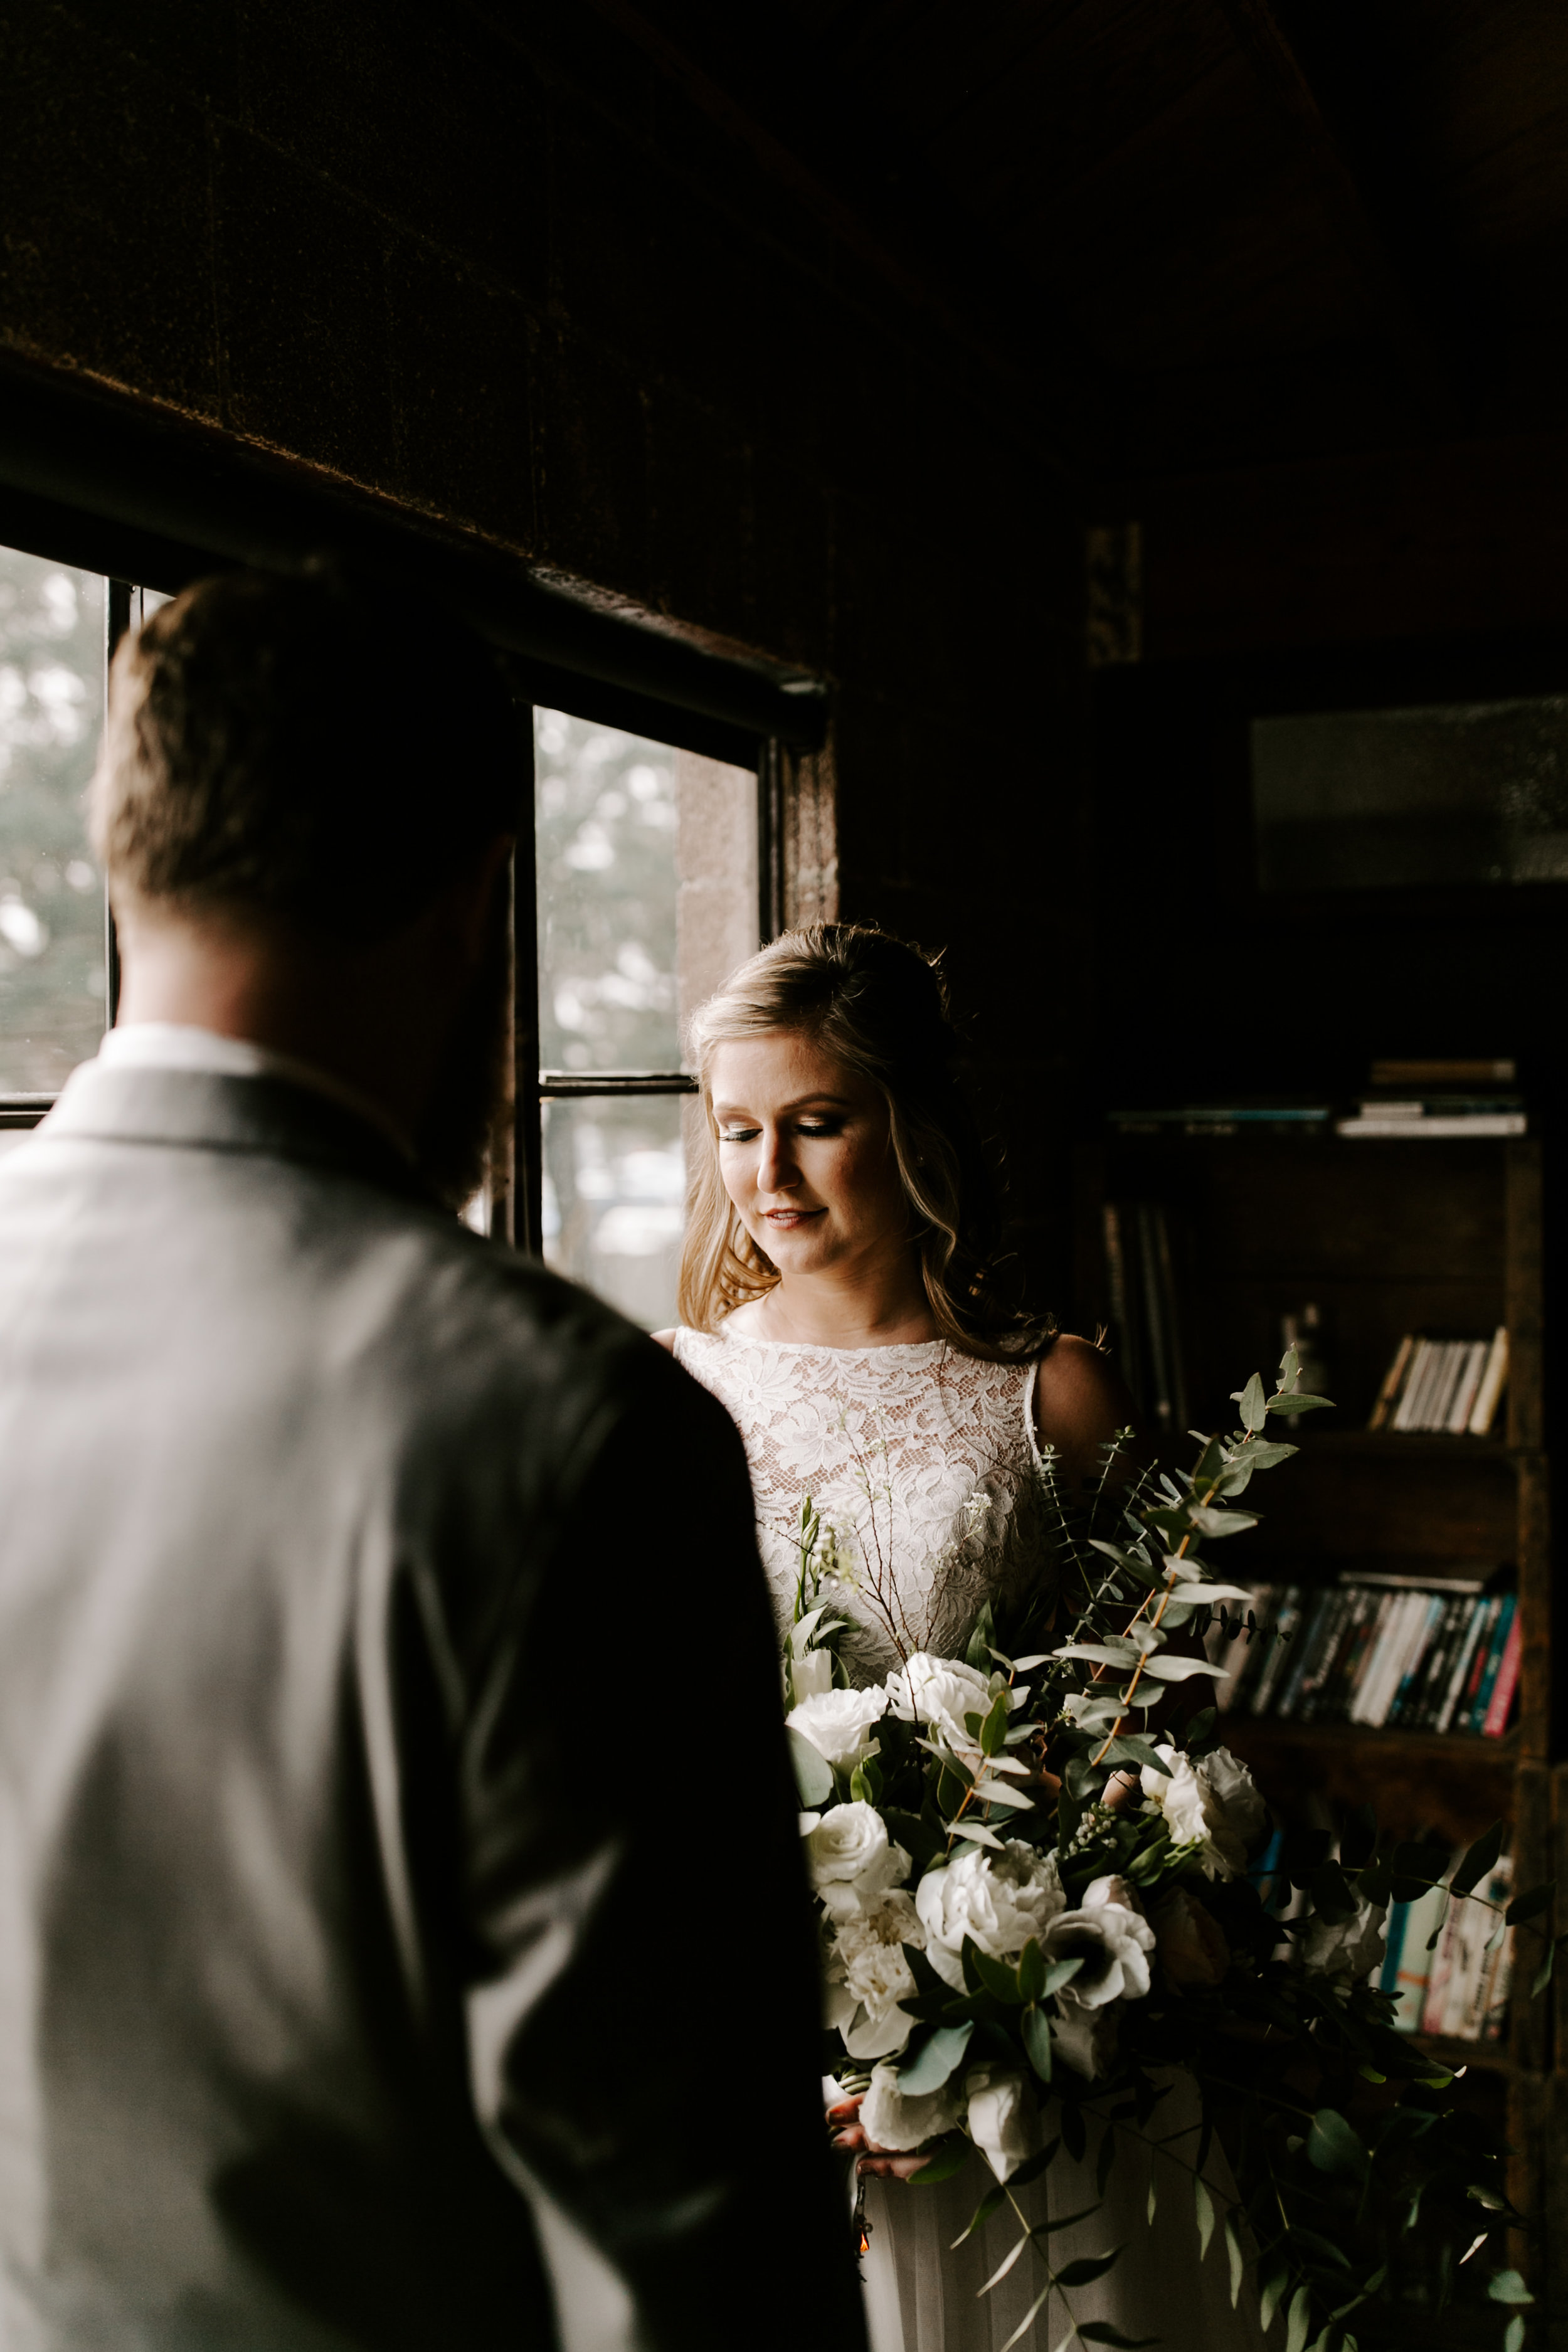 Smoky Hollow Studios Wedding Anne & Lewis Emily Magers Photography-397.jpg